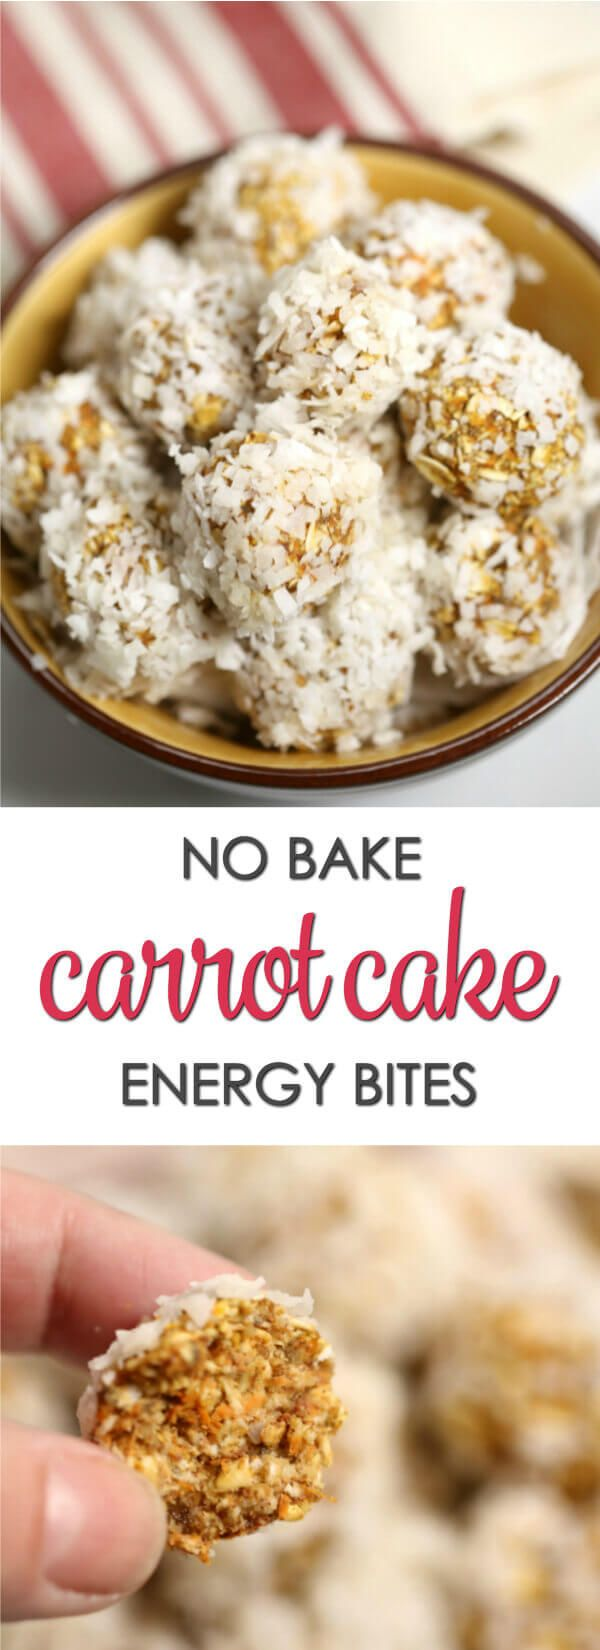 These No Bake Carrot Cake Energy Bites are a delicious and wholesome snack that are sure to satisfy your sweet tooth.  They're packed with good for you ingredients that will keep your energy levels up. #CarrotCake #HealthyRecipe #EasyRecipe